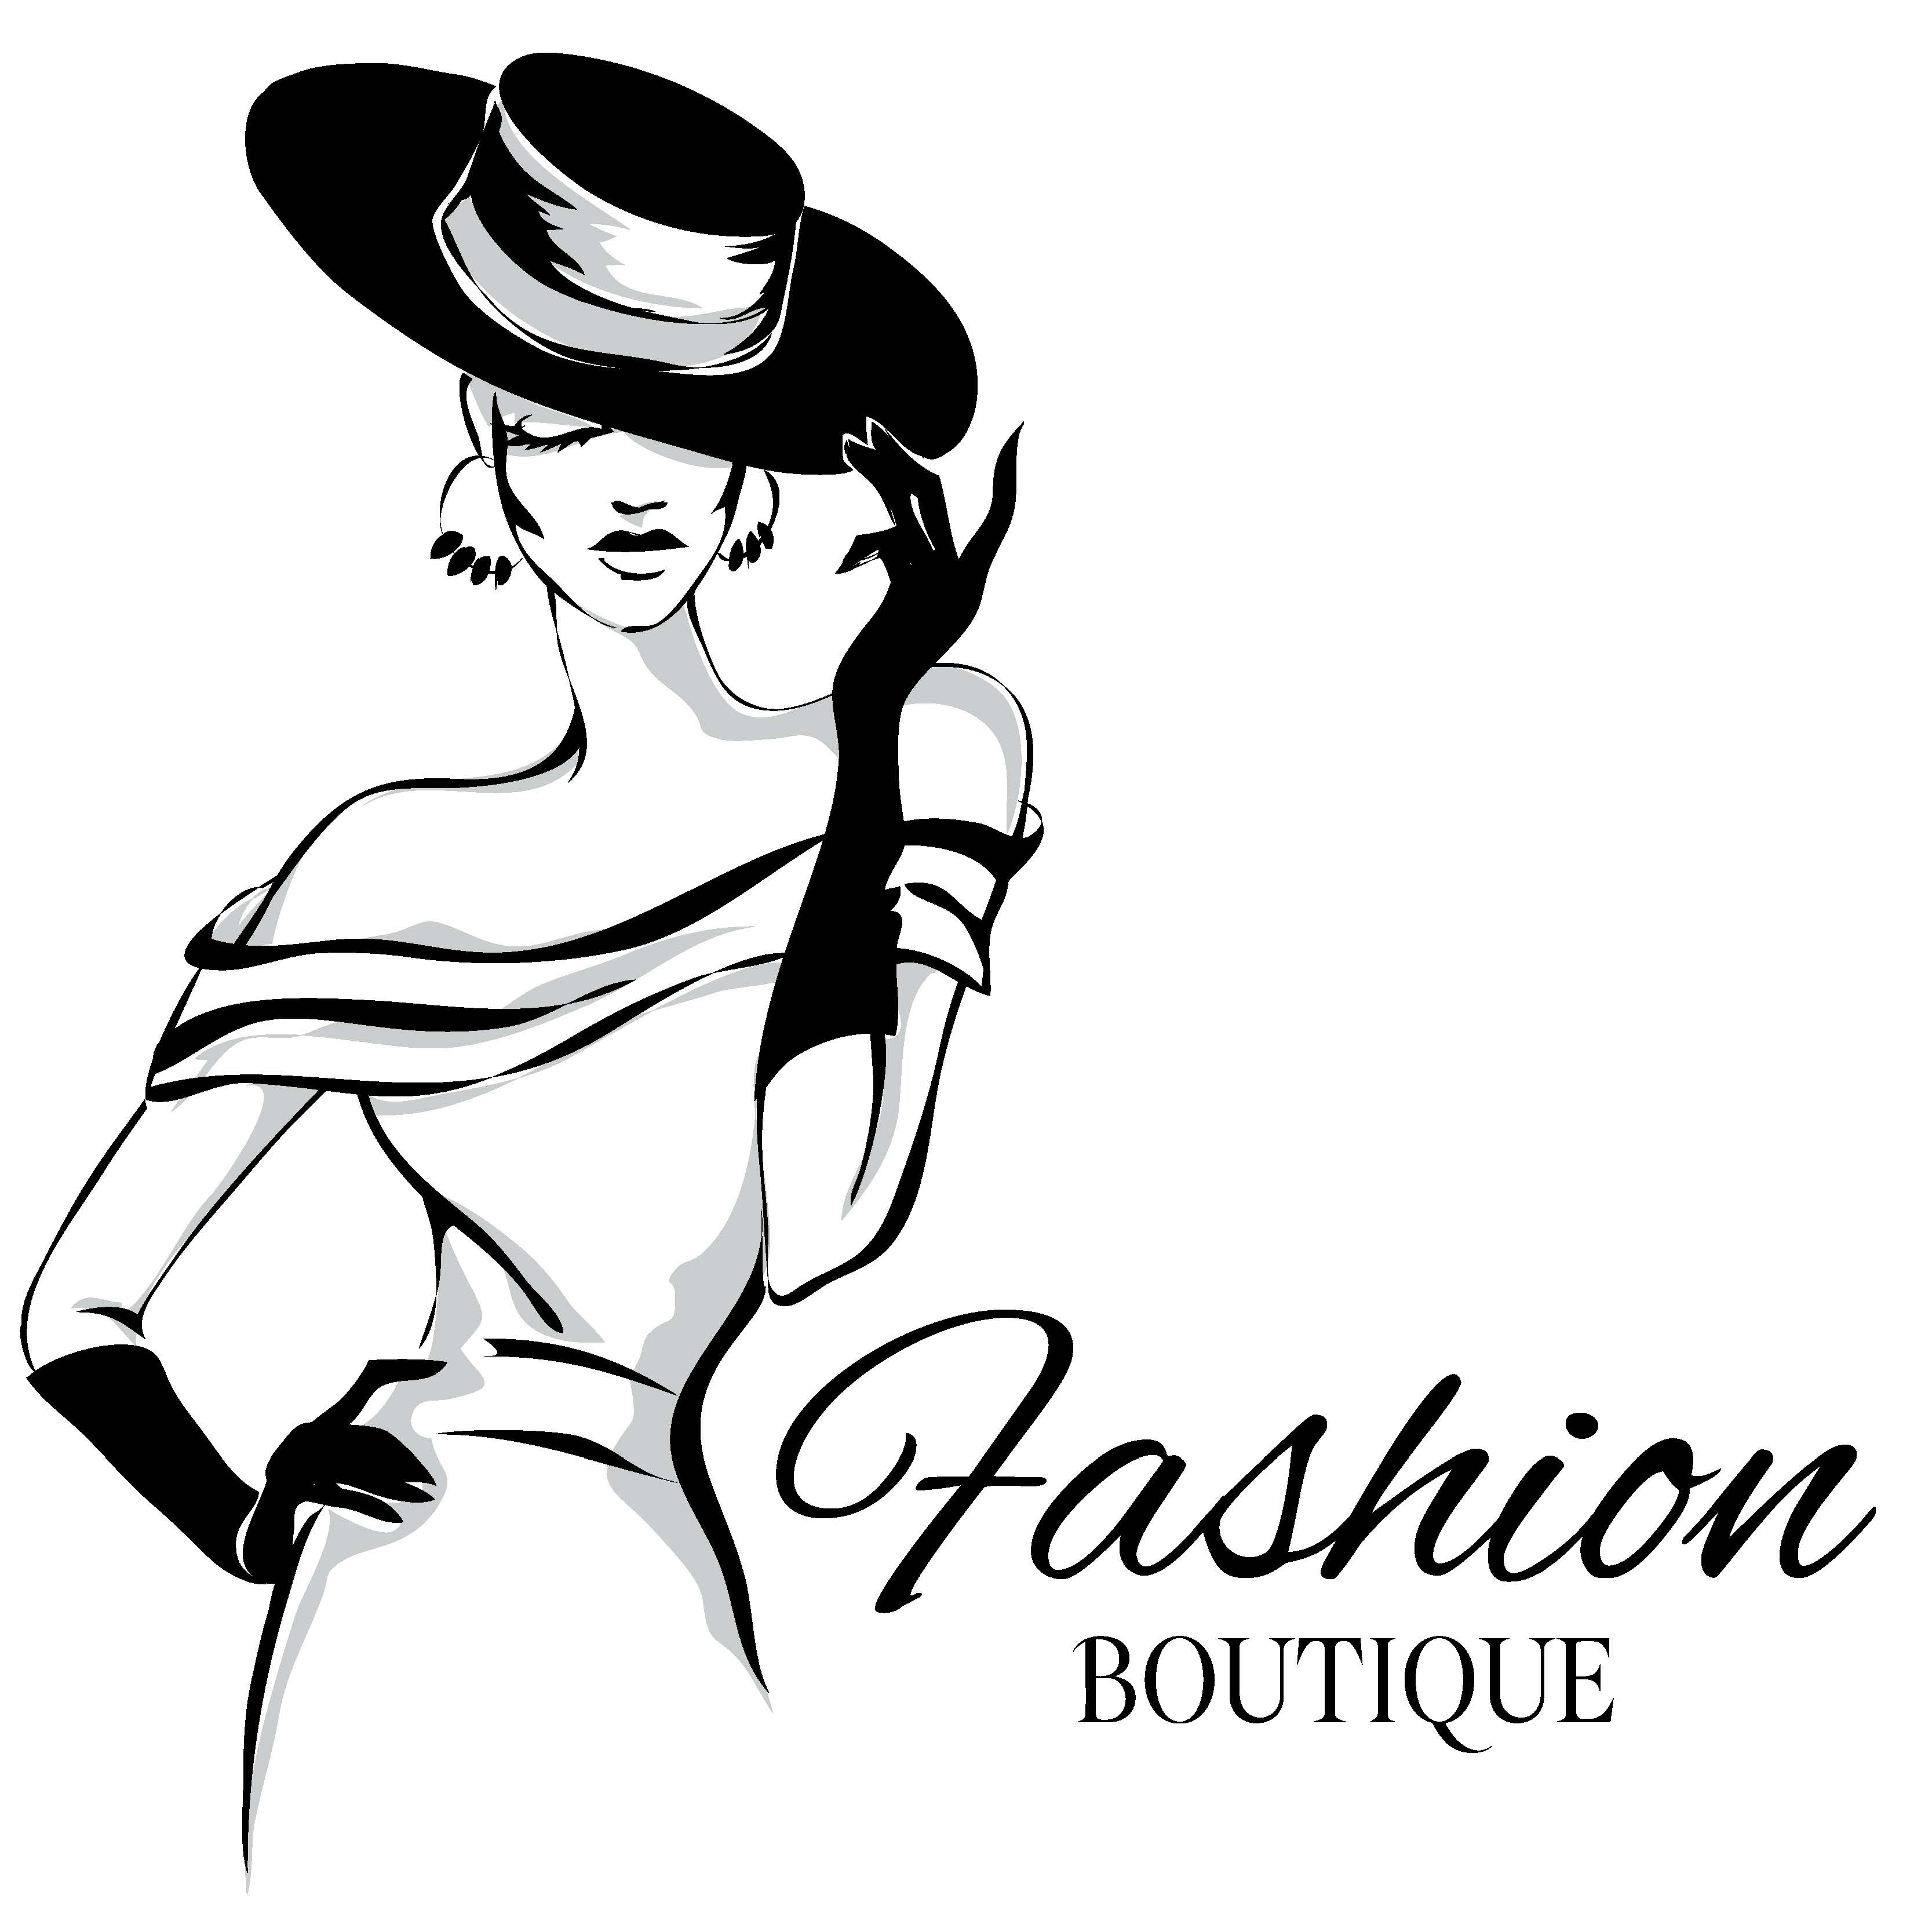 Women Retail Fashion Boutique in the Eastern Suburbs